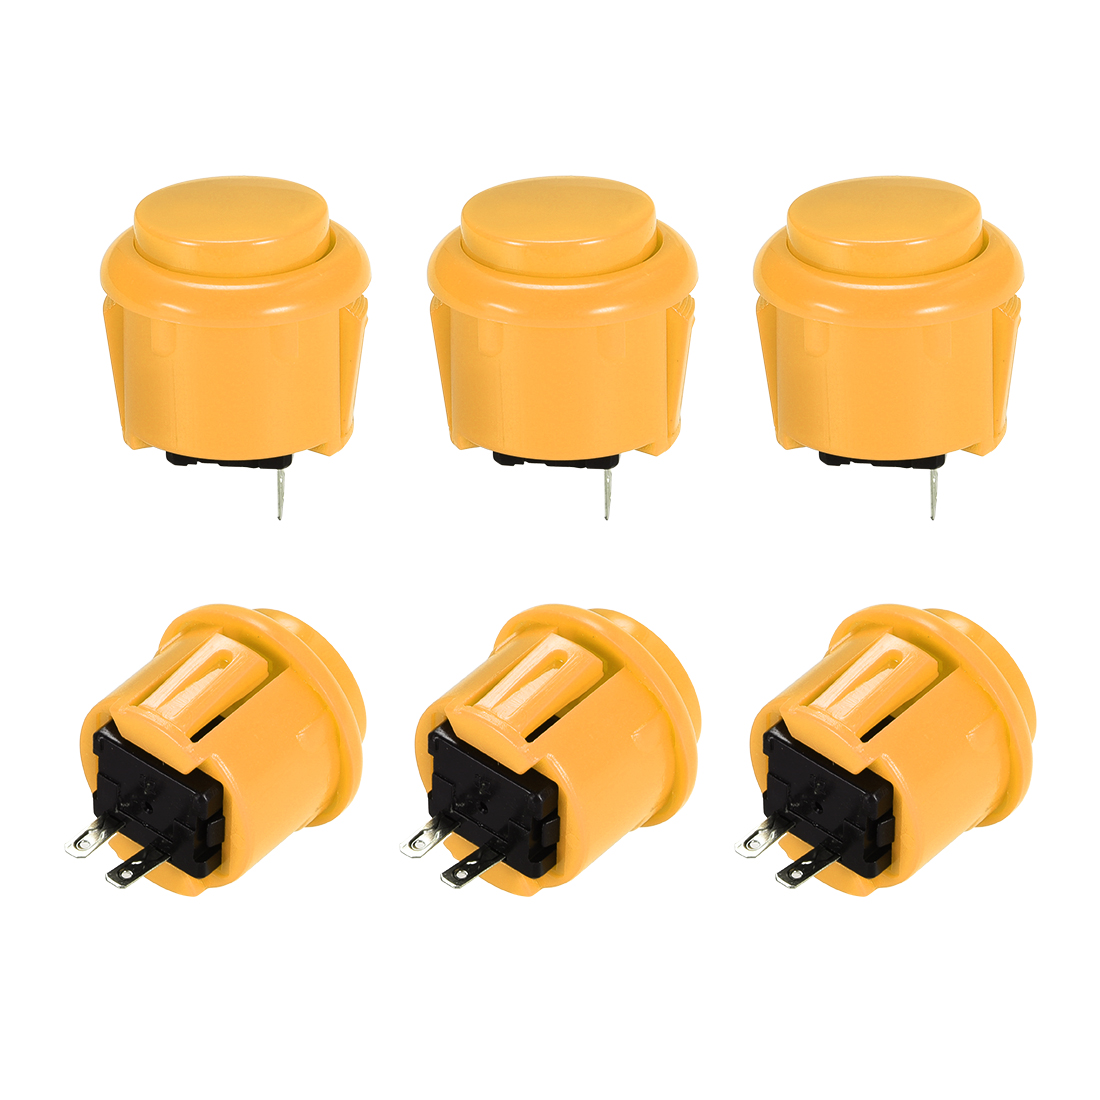 23mm Momentary Game Push Button Switch for Arcade Video Games Yellow 6pcs